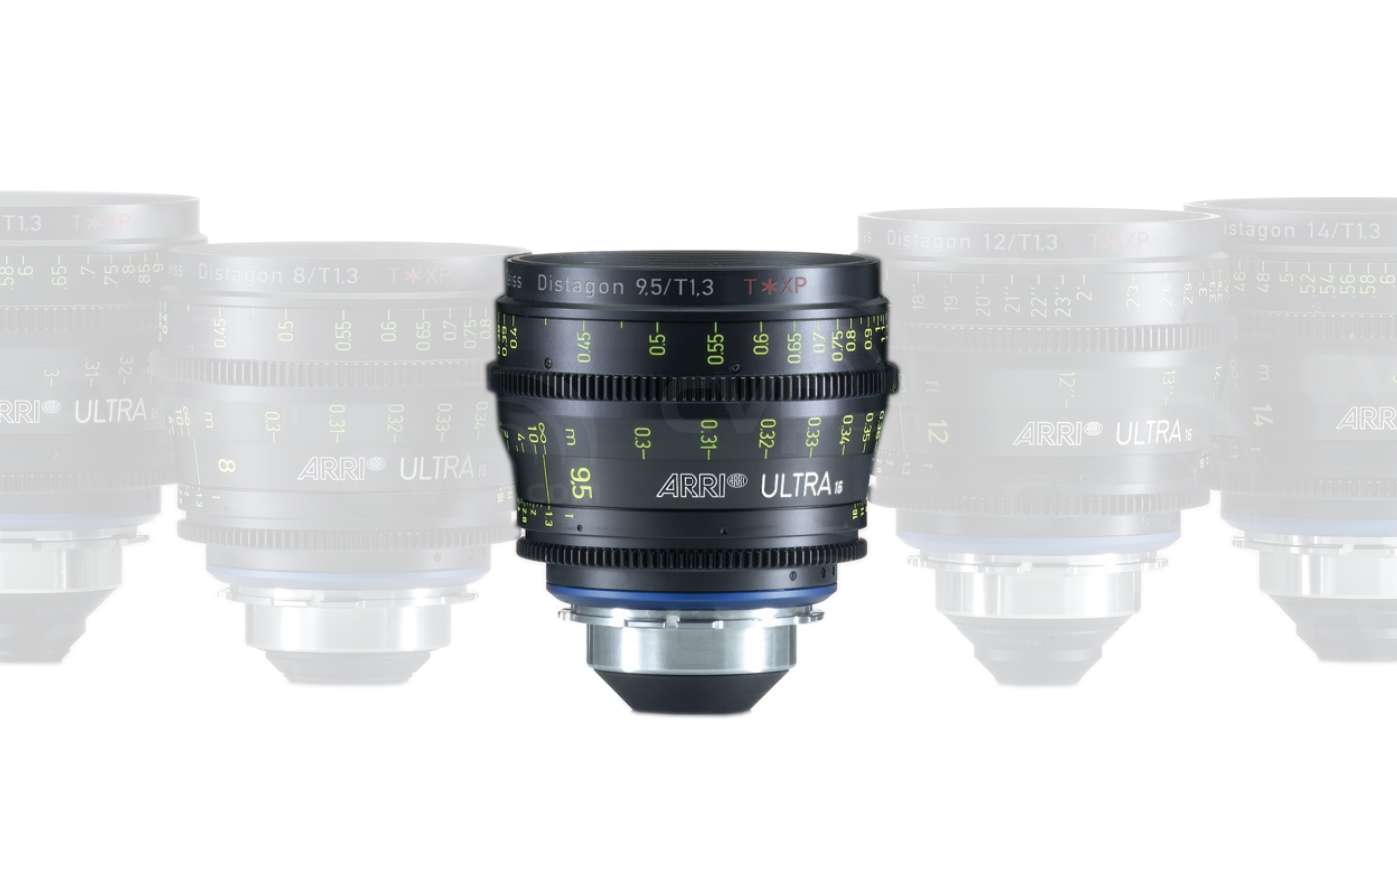 ARRI 9.5mm T1.3 Ultra 16 Distagon T* XP Lens - PL Mount - Available in Feet or Metre Scale (K2.47567.0)